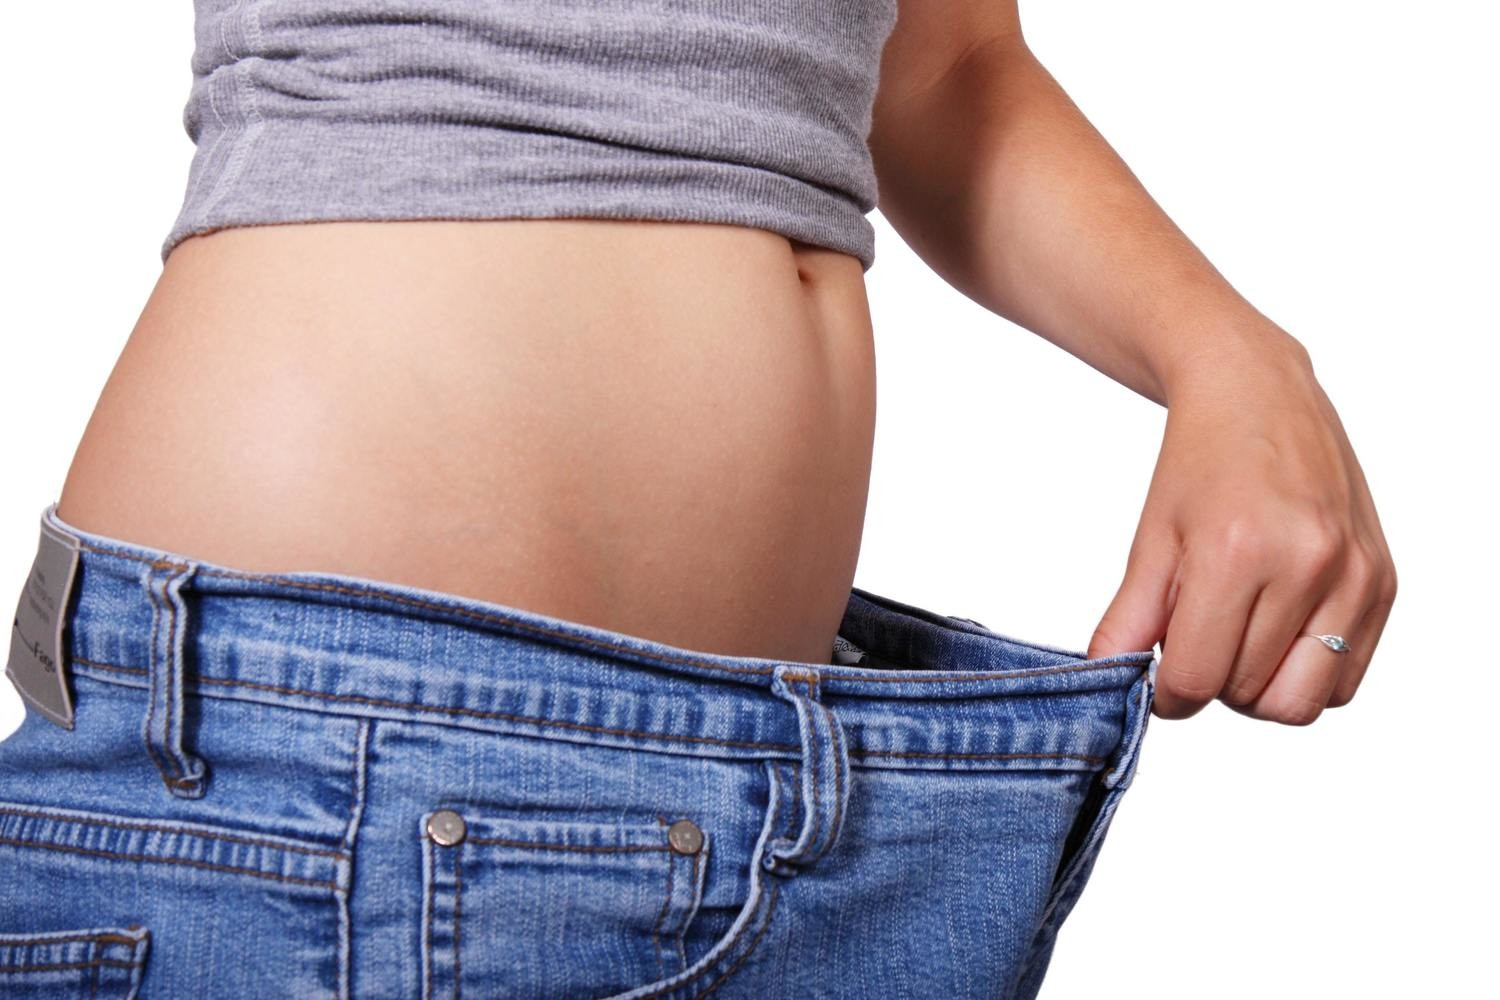 Losing Weight Well Being Spell, $39